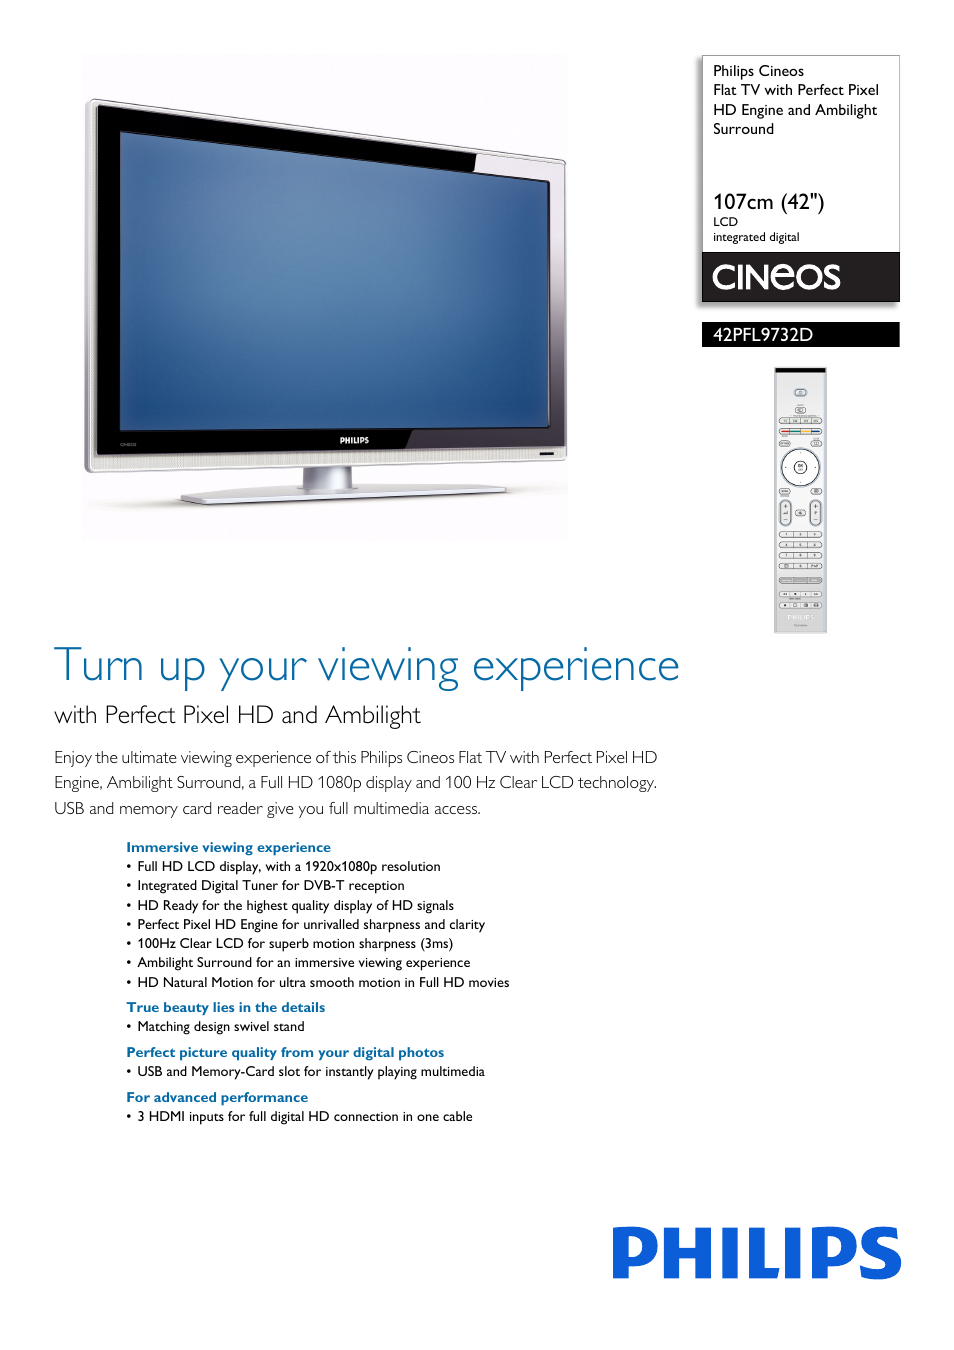 Philips Cineos Flat TV User Manual | 3 pages